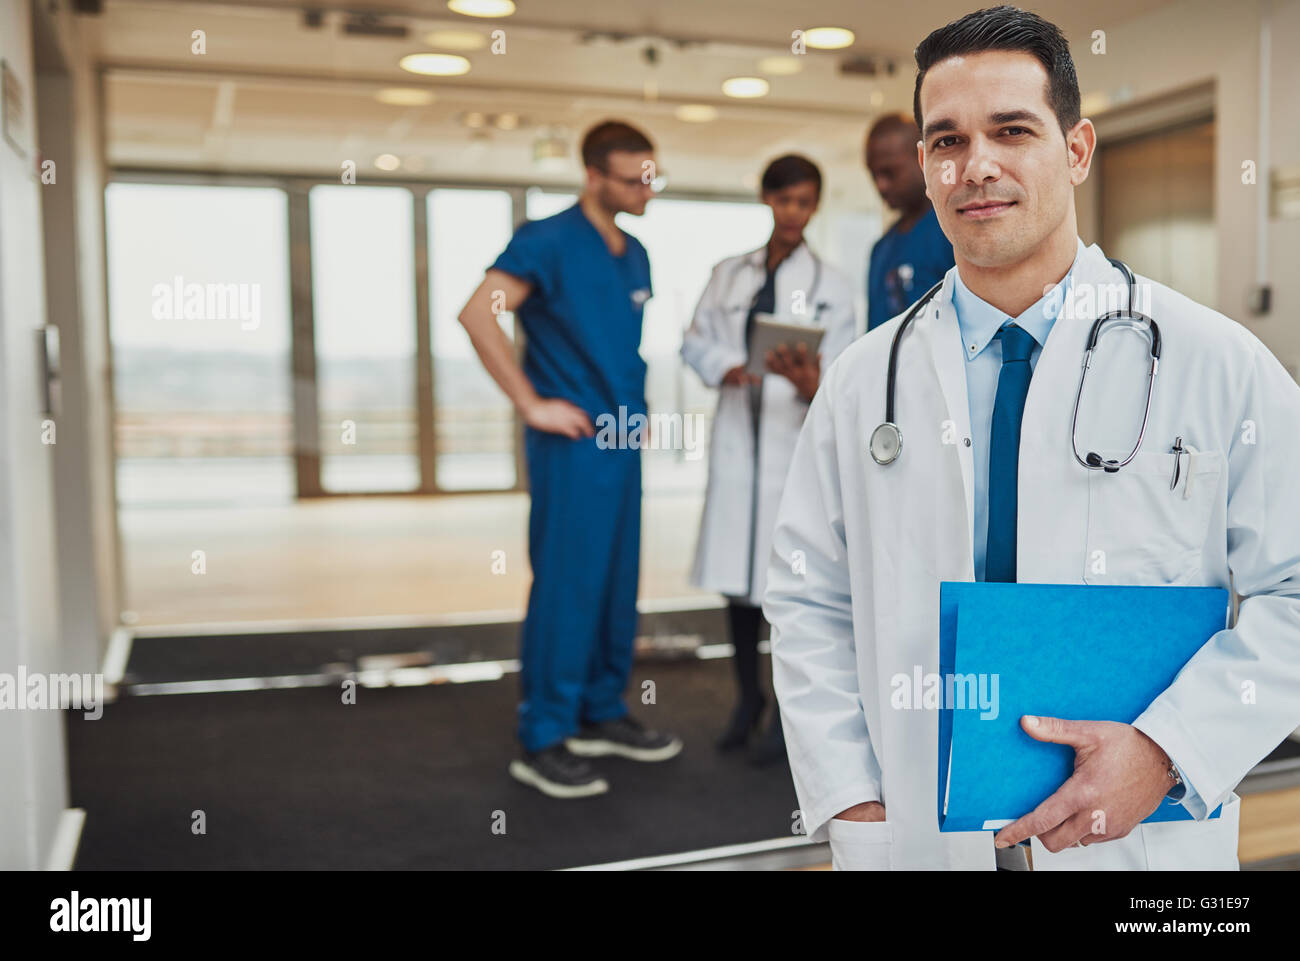 Doctor at hospital standing in front of team of surgeons and doctors, Medical Crew - Stock Image